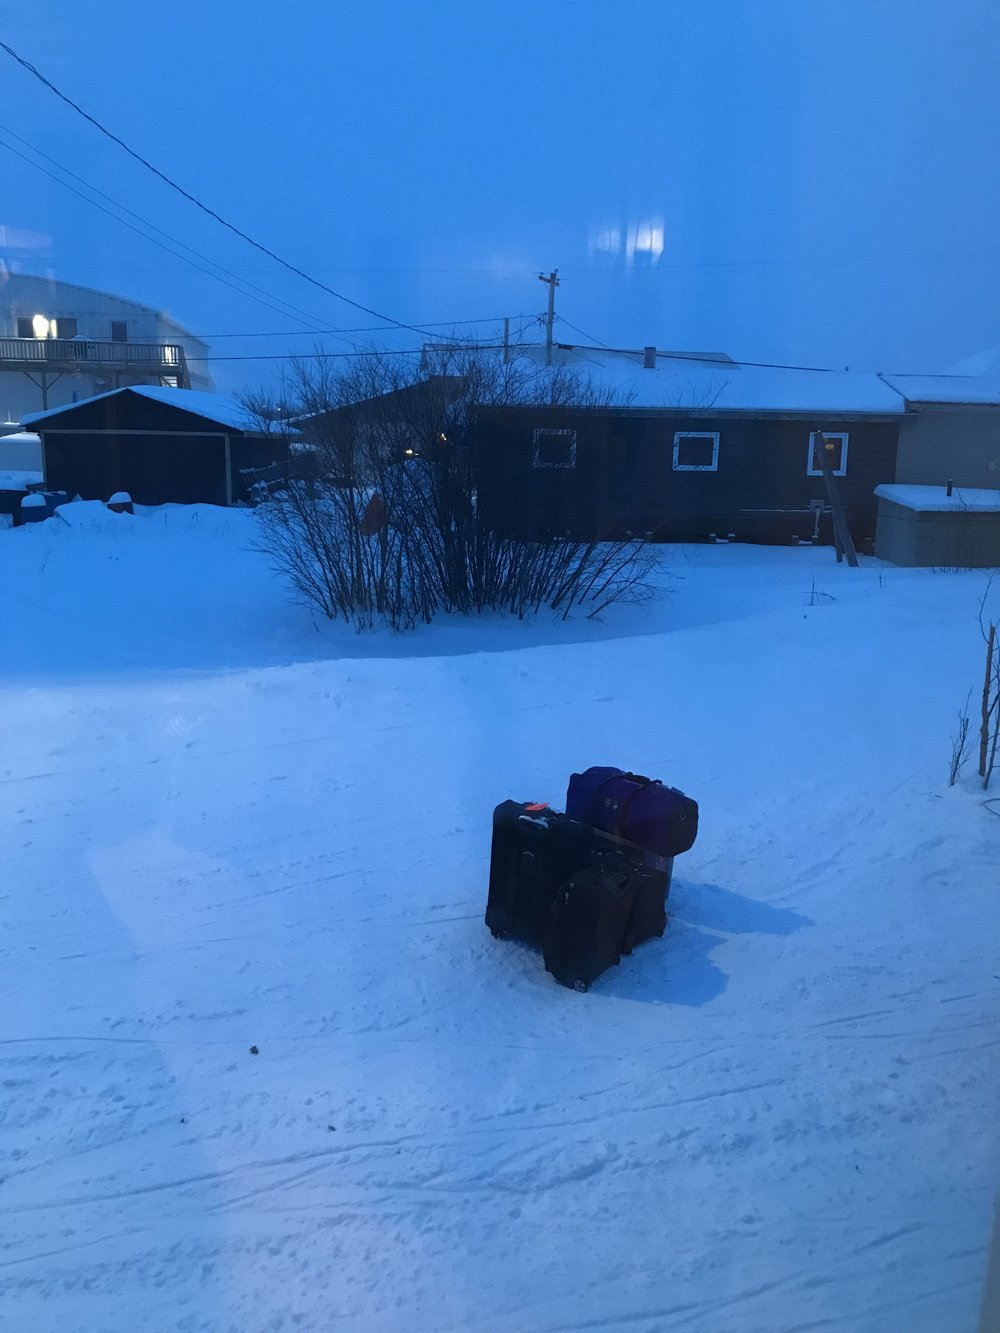 Our bags wait outside in the swirling snow…